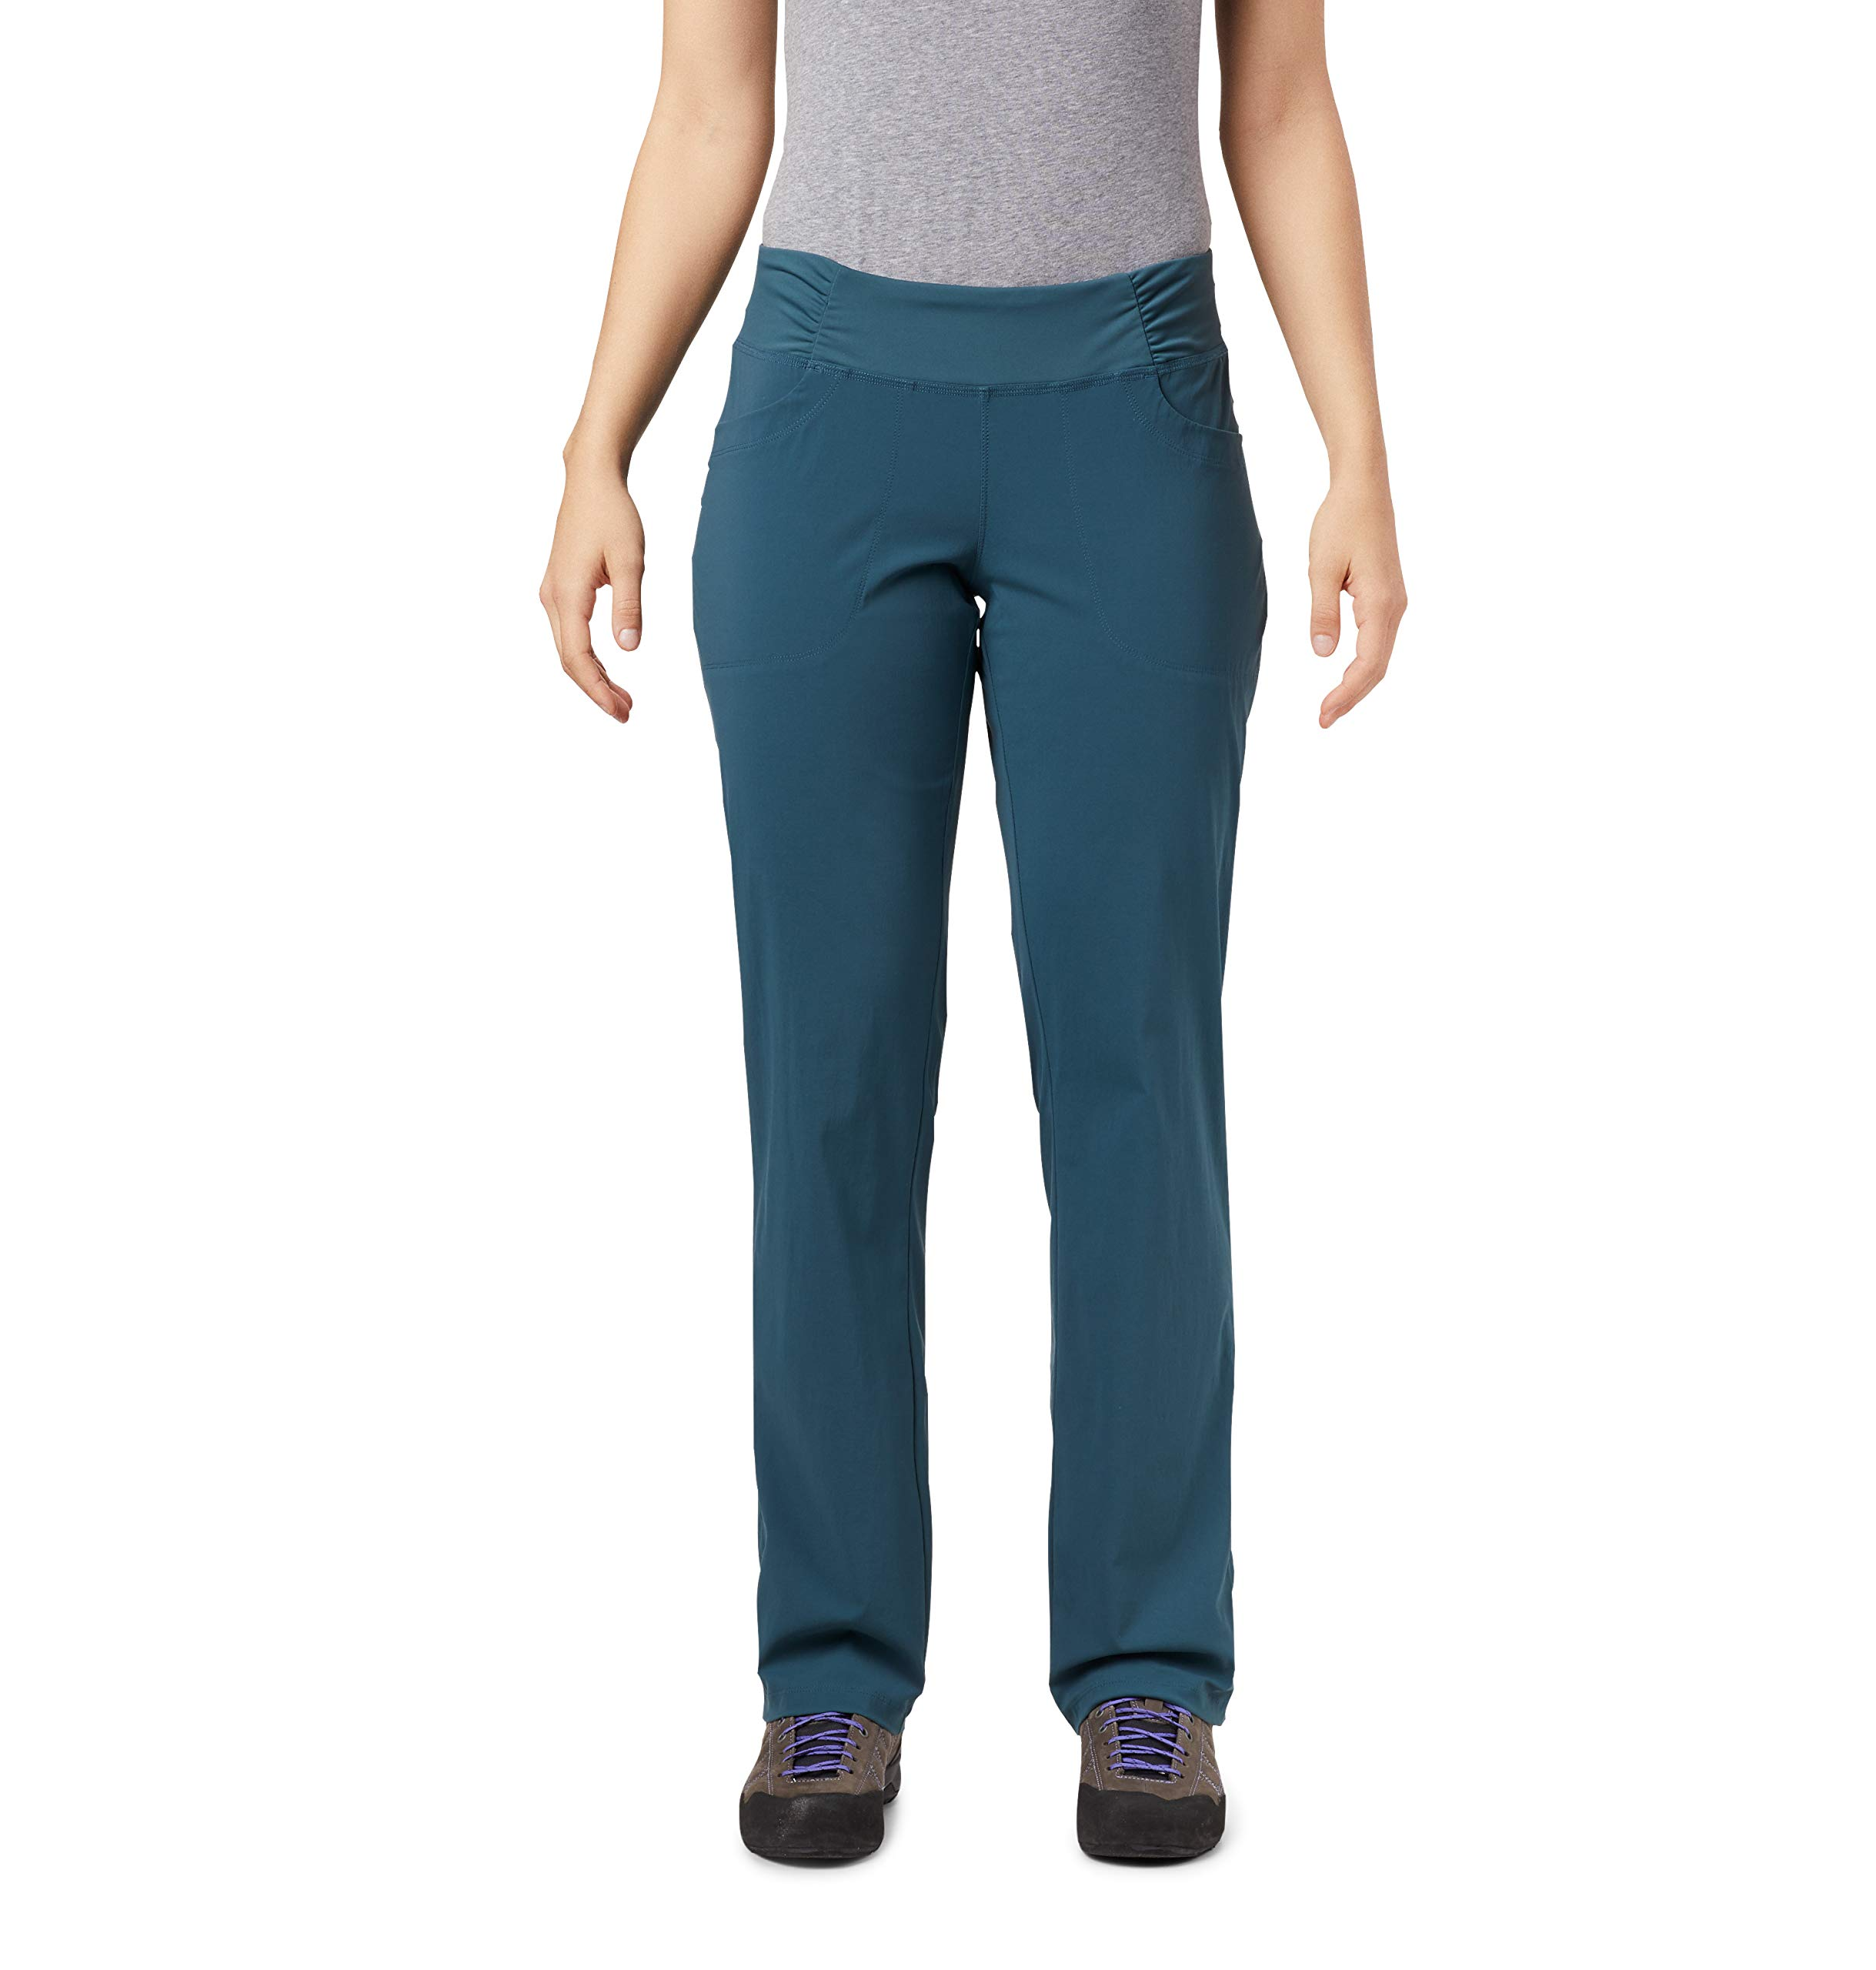 Mountain Hardwear Womens Dynama Pant for Climbing, Hiking, Cross-Training, or Everyday Use